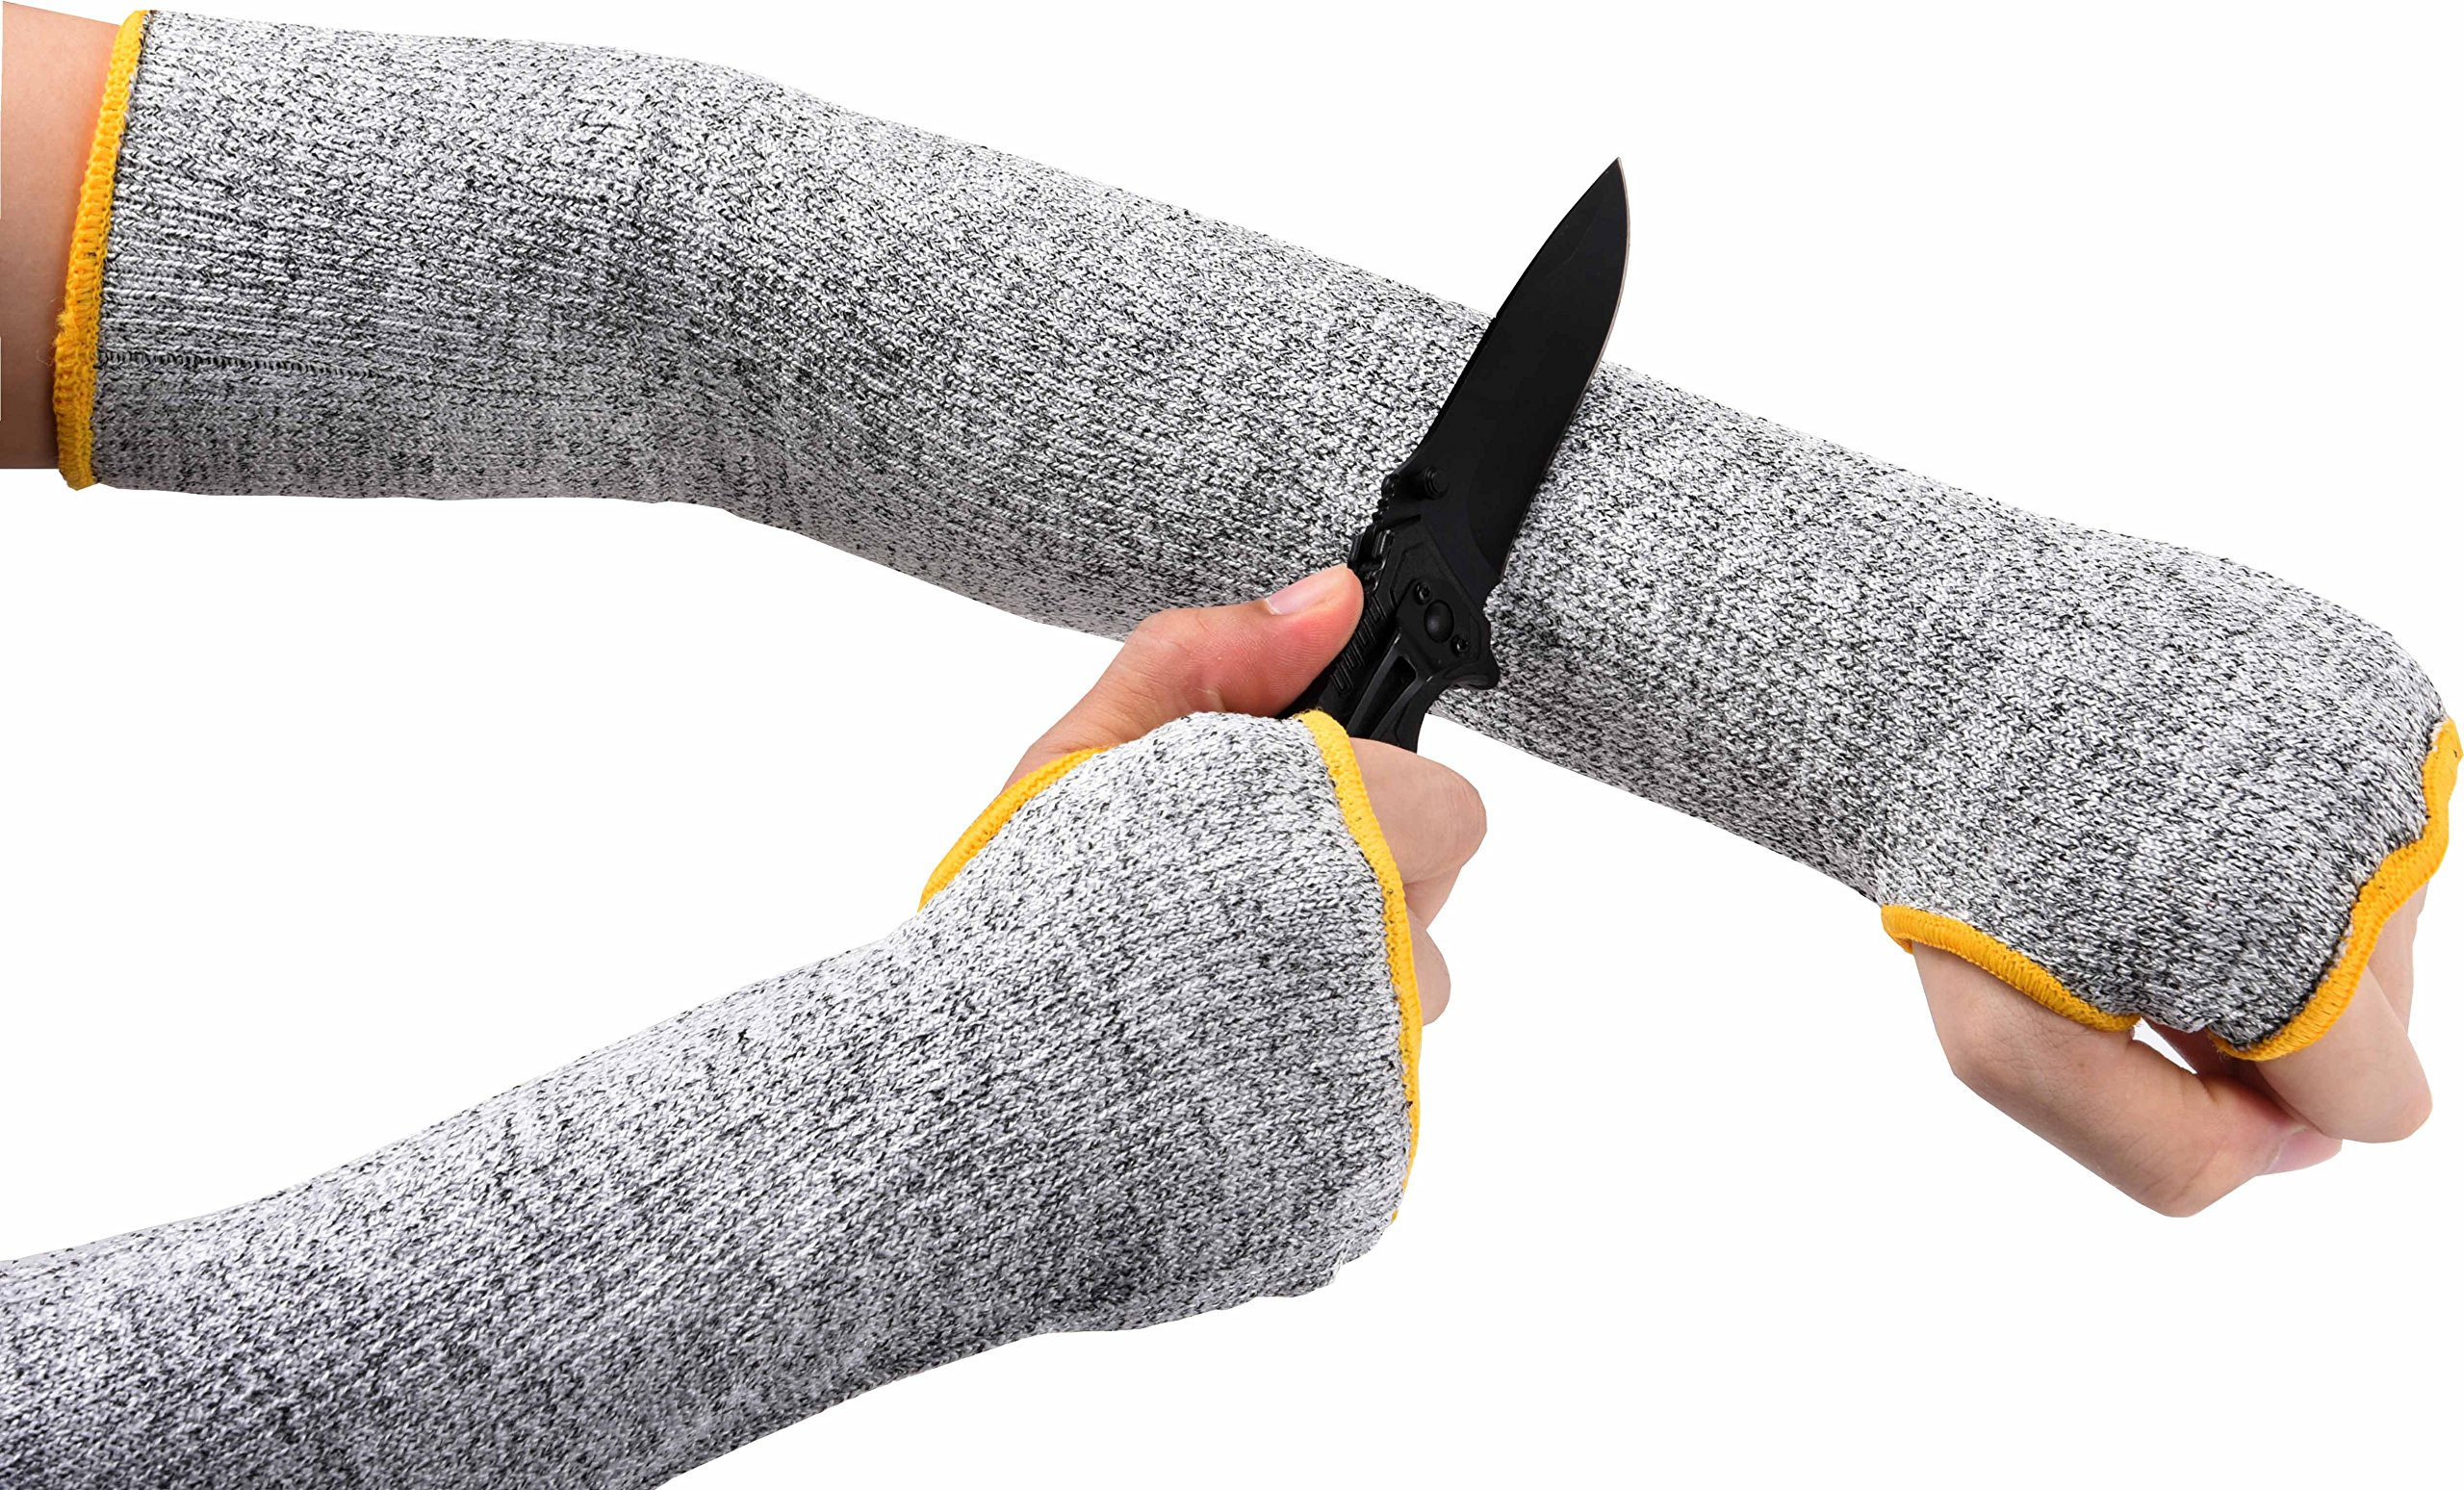 Hilinker Cut Resistant Sleeves Slash Resistant with Thumb Slot Helps Prevent Scrapes Scratches Skin Irritations UV-Protection Level 7 Protection Work Safety 18.8 inch Long Grey 1 Pair (Grey)